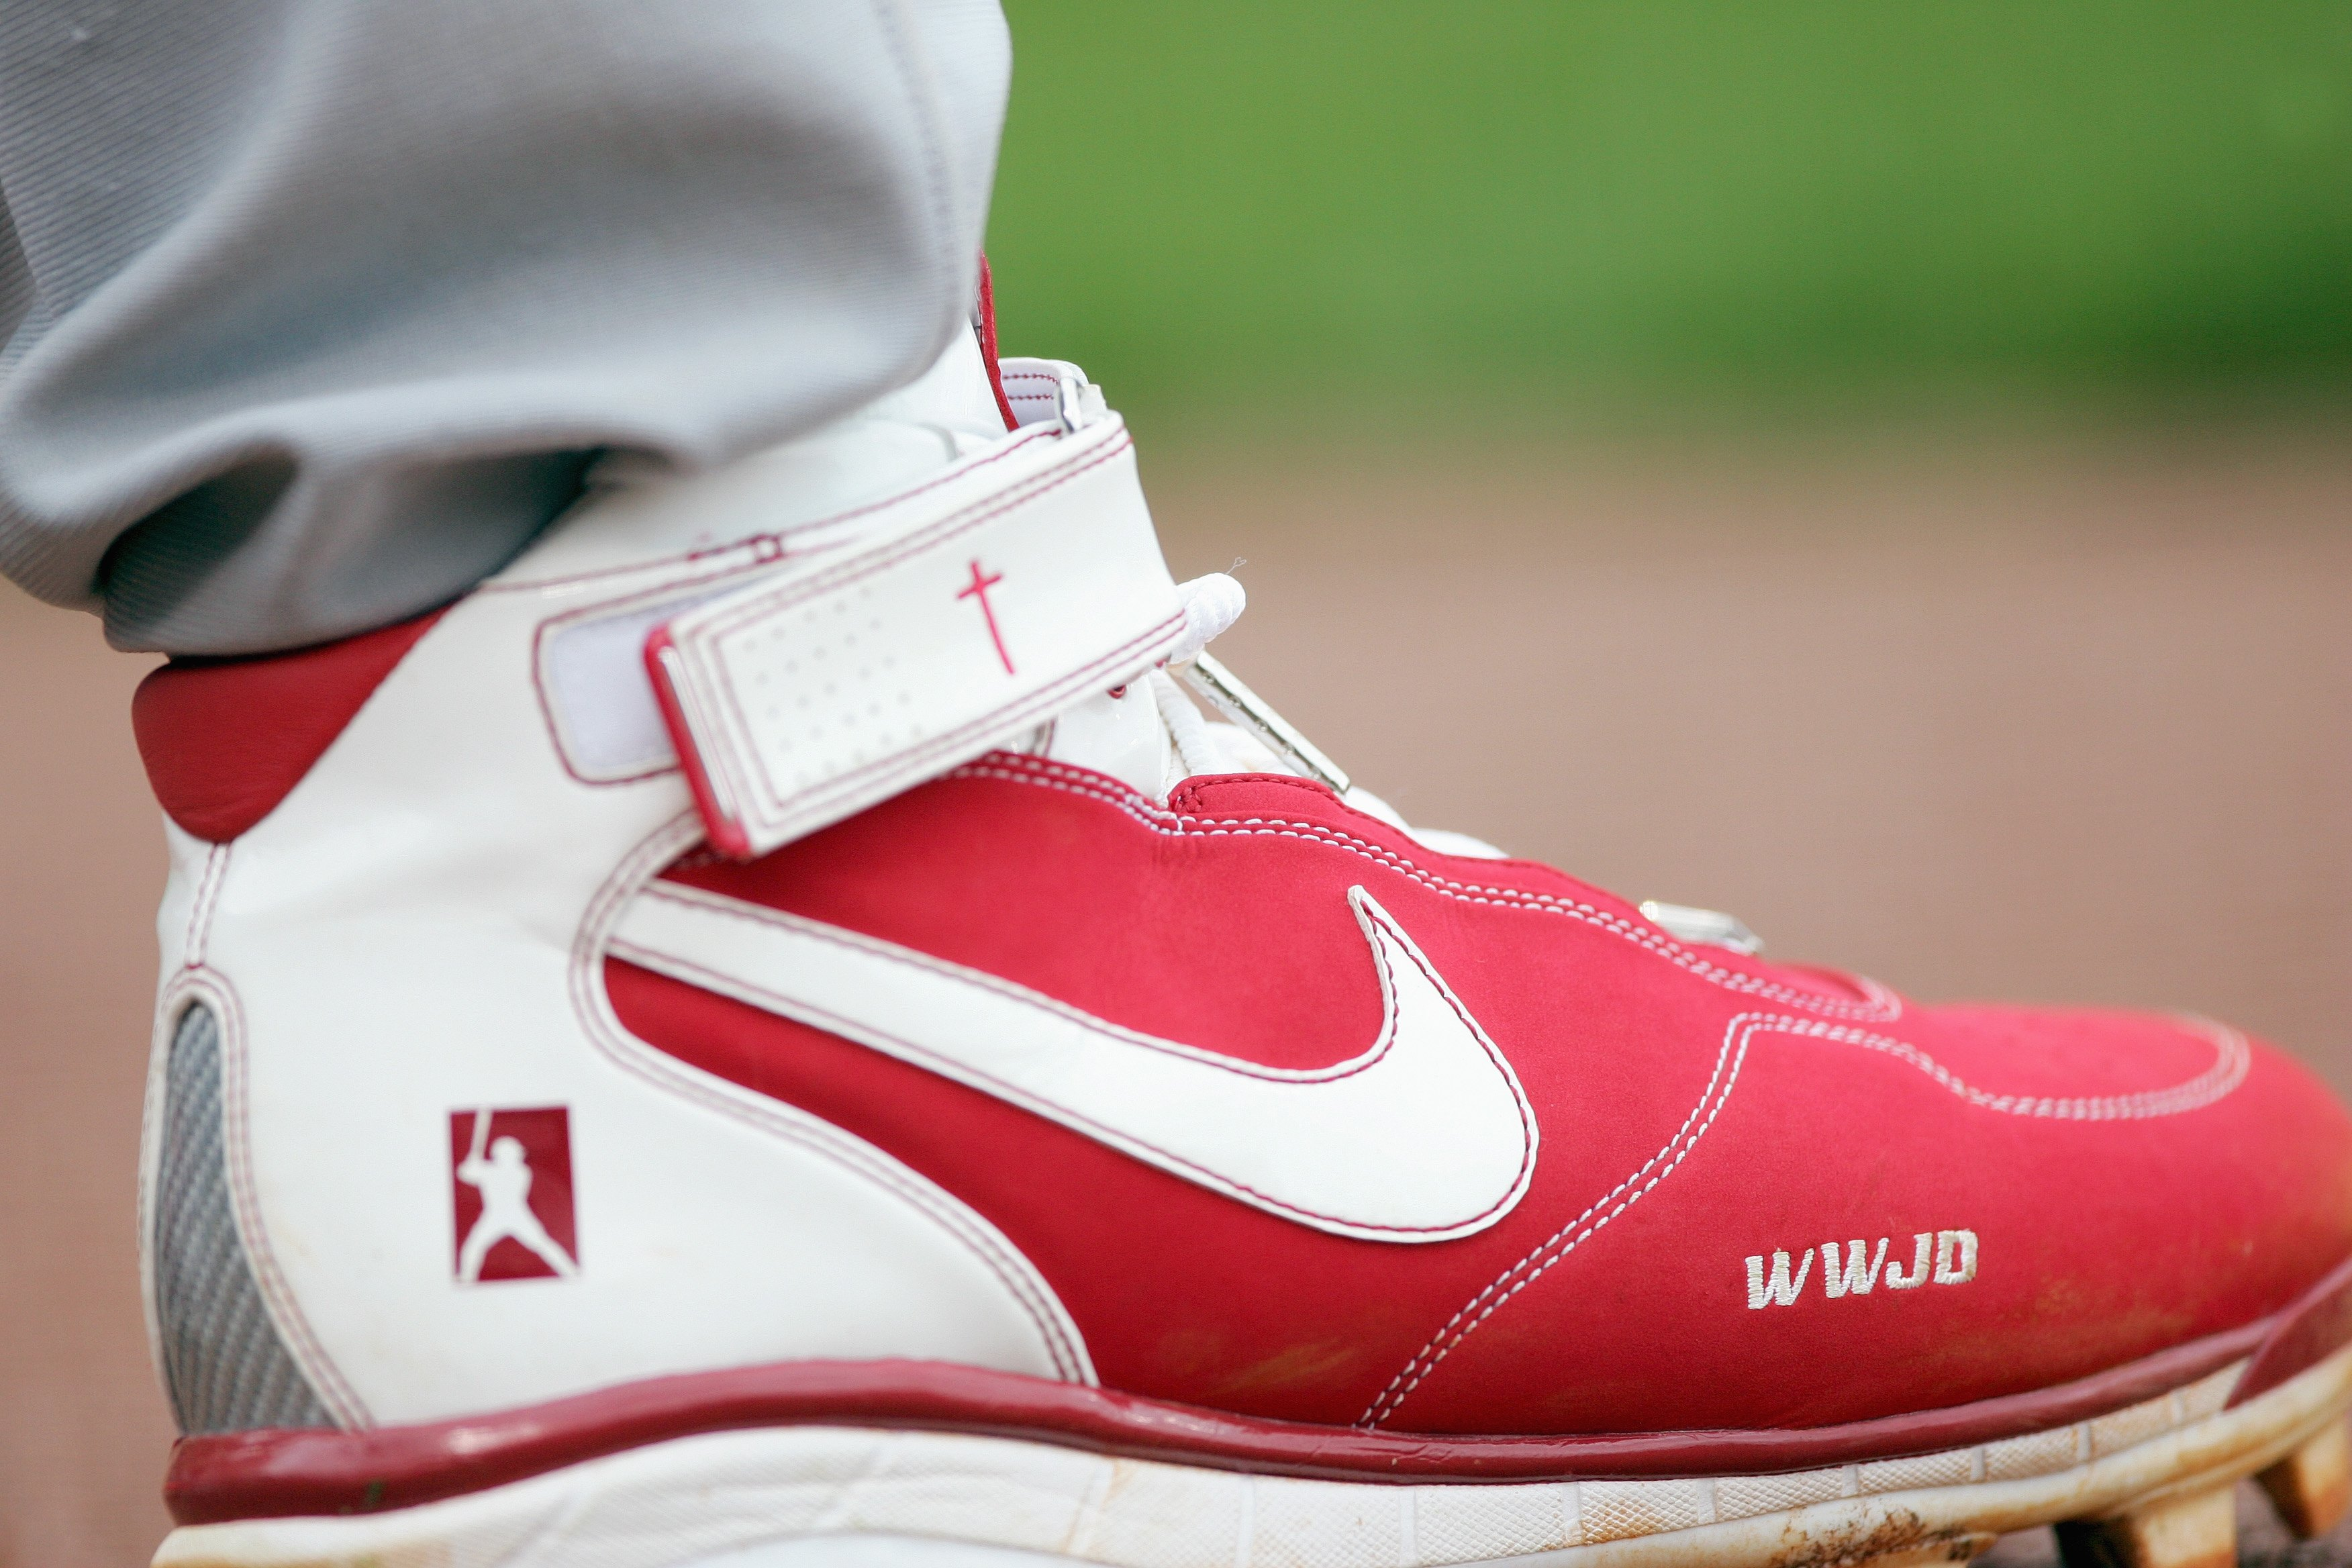 SAN FRANCISCO - APRIL 19: A view of Albert Pujols #5 of the St. Louis Cardinals shoe showing the Pujoles Family Foundation and WWJS 'What would Jesus do?'taken on the field against the San Francisco Giants during a Major League Baseball game on April 19,